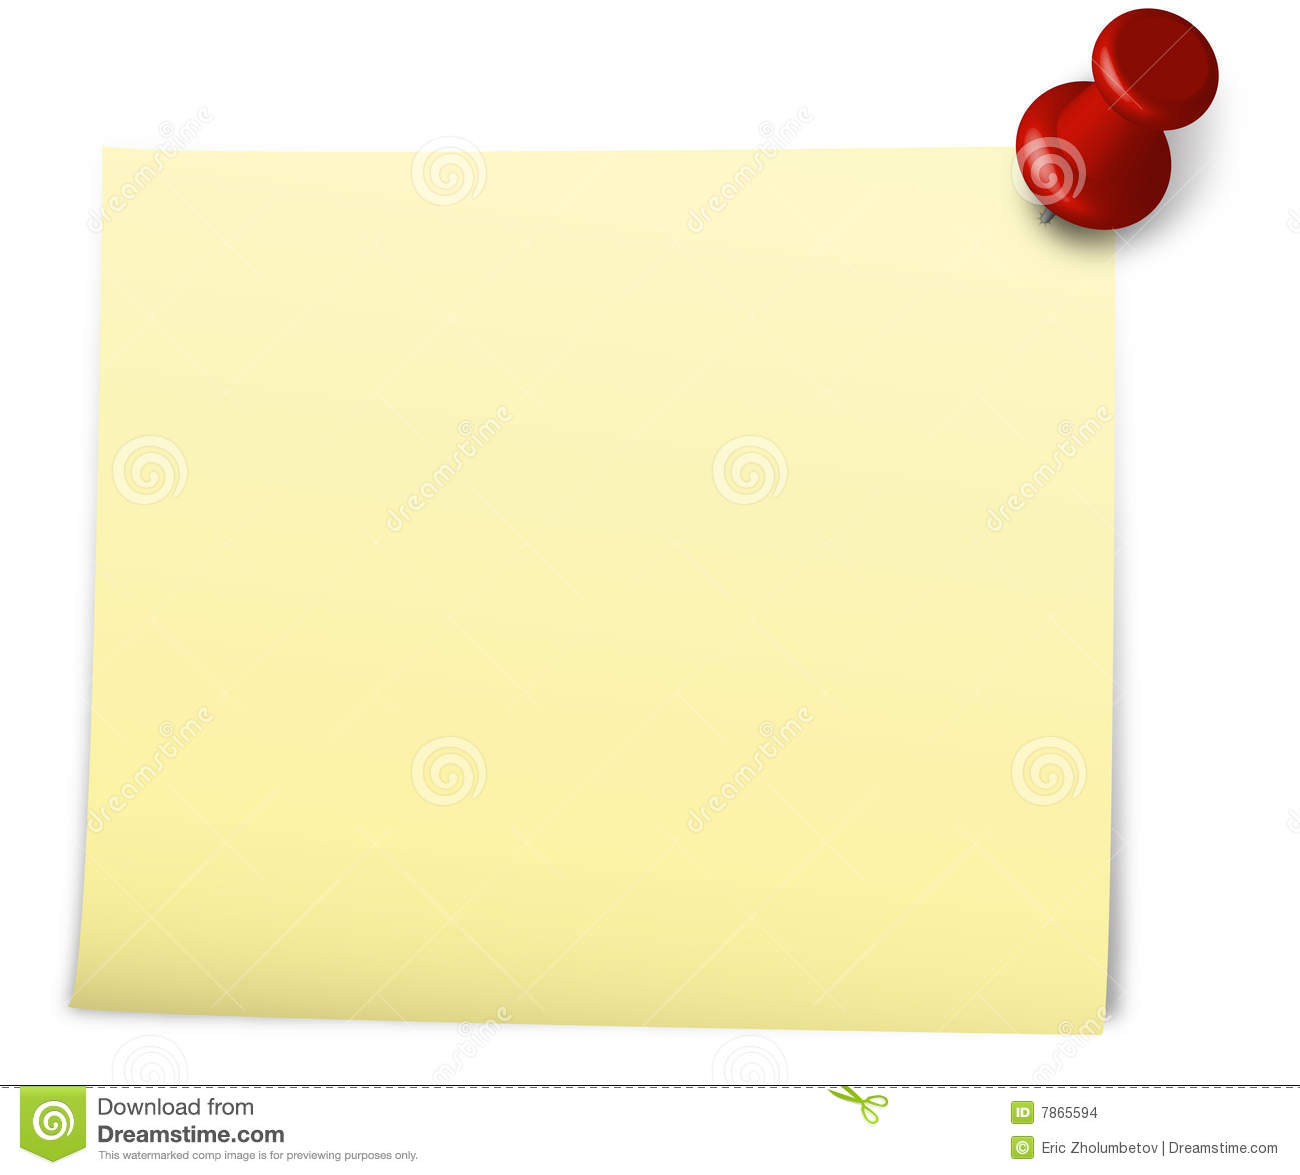 Vector illustration of a yellow blank note pinned by a red pin.